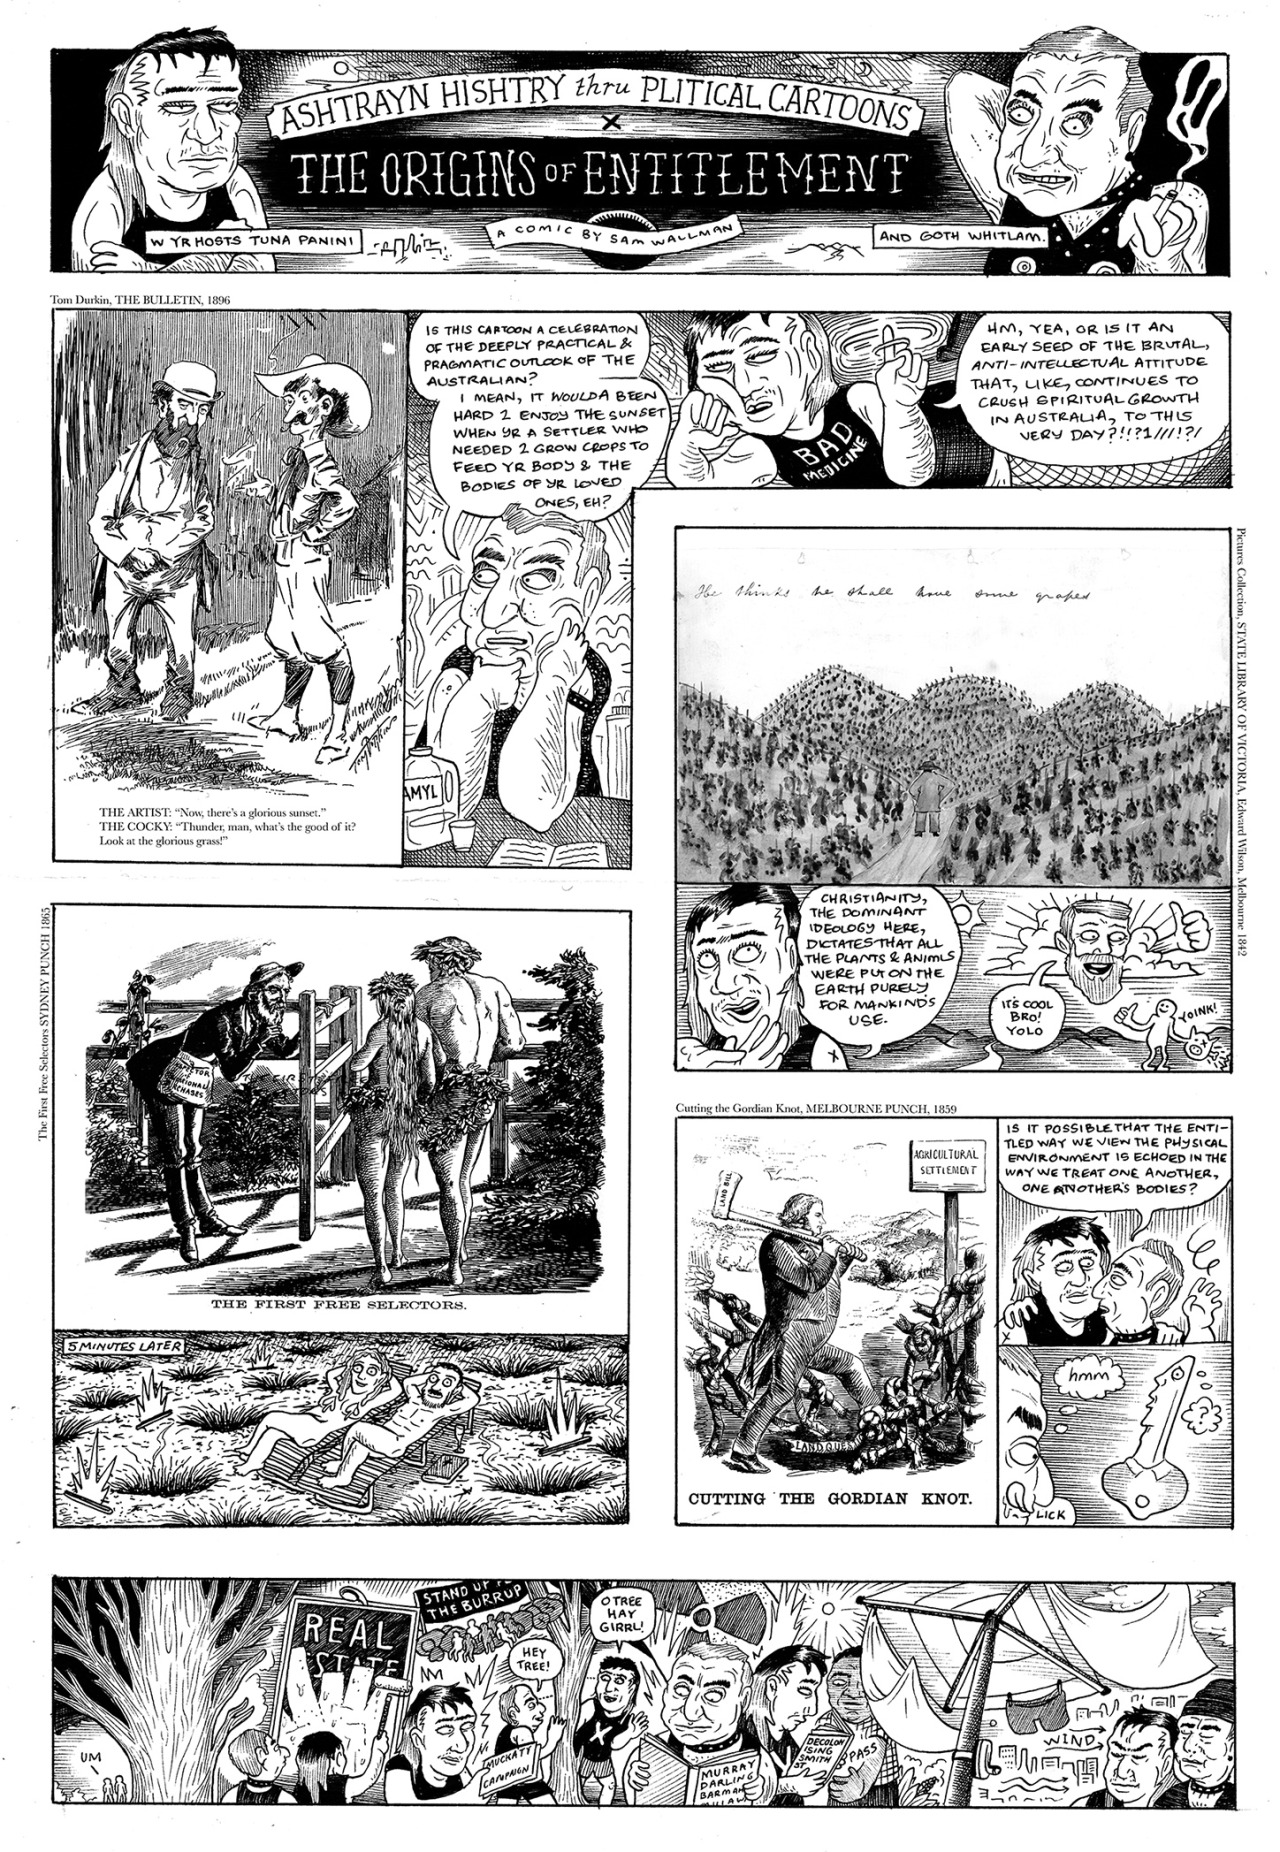 The latest instalment of  Sam Wallman 's series 'Ashtrayan Hishtry through Political Cartoons', in   The Lifted Brow #24: The Medicine Issue  .     penerasespaper :      Ashtrayan Histry thru pliticl cartoons   #6 , from the current issue of the lifted brow which u can buy from  here . this issue has work by tom o'hern, mary leunig, dion kagan, ellena savage and marc pearson, pretty good.